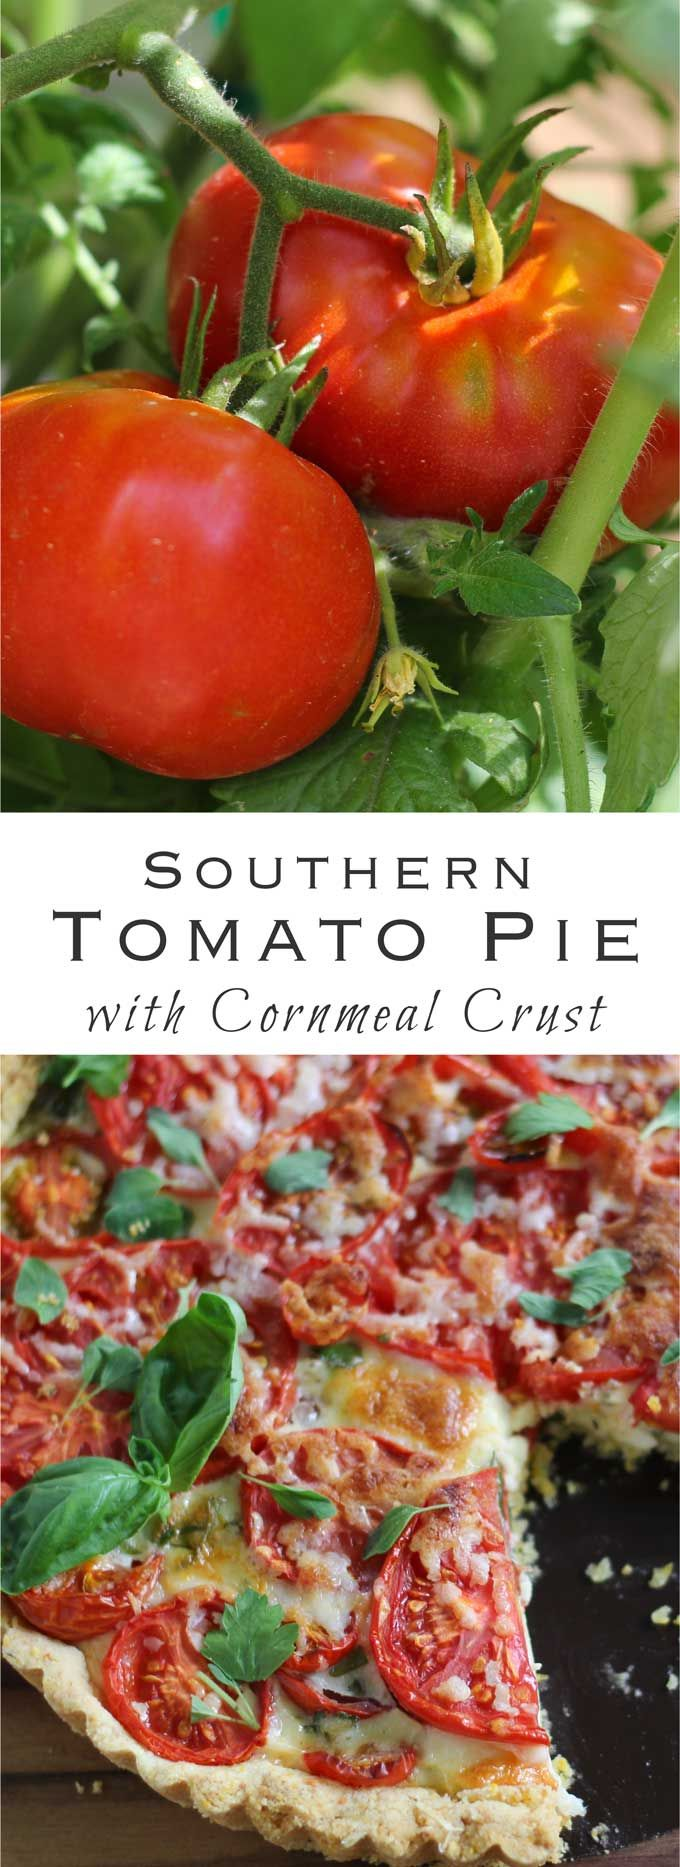 Southern Tomato Pie with a Cornmeal Crust. Gluten-free option, too.